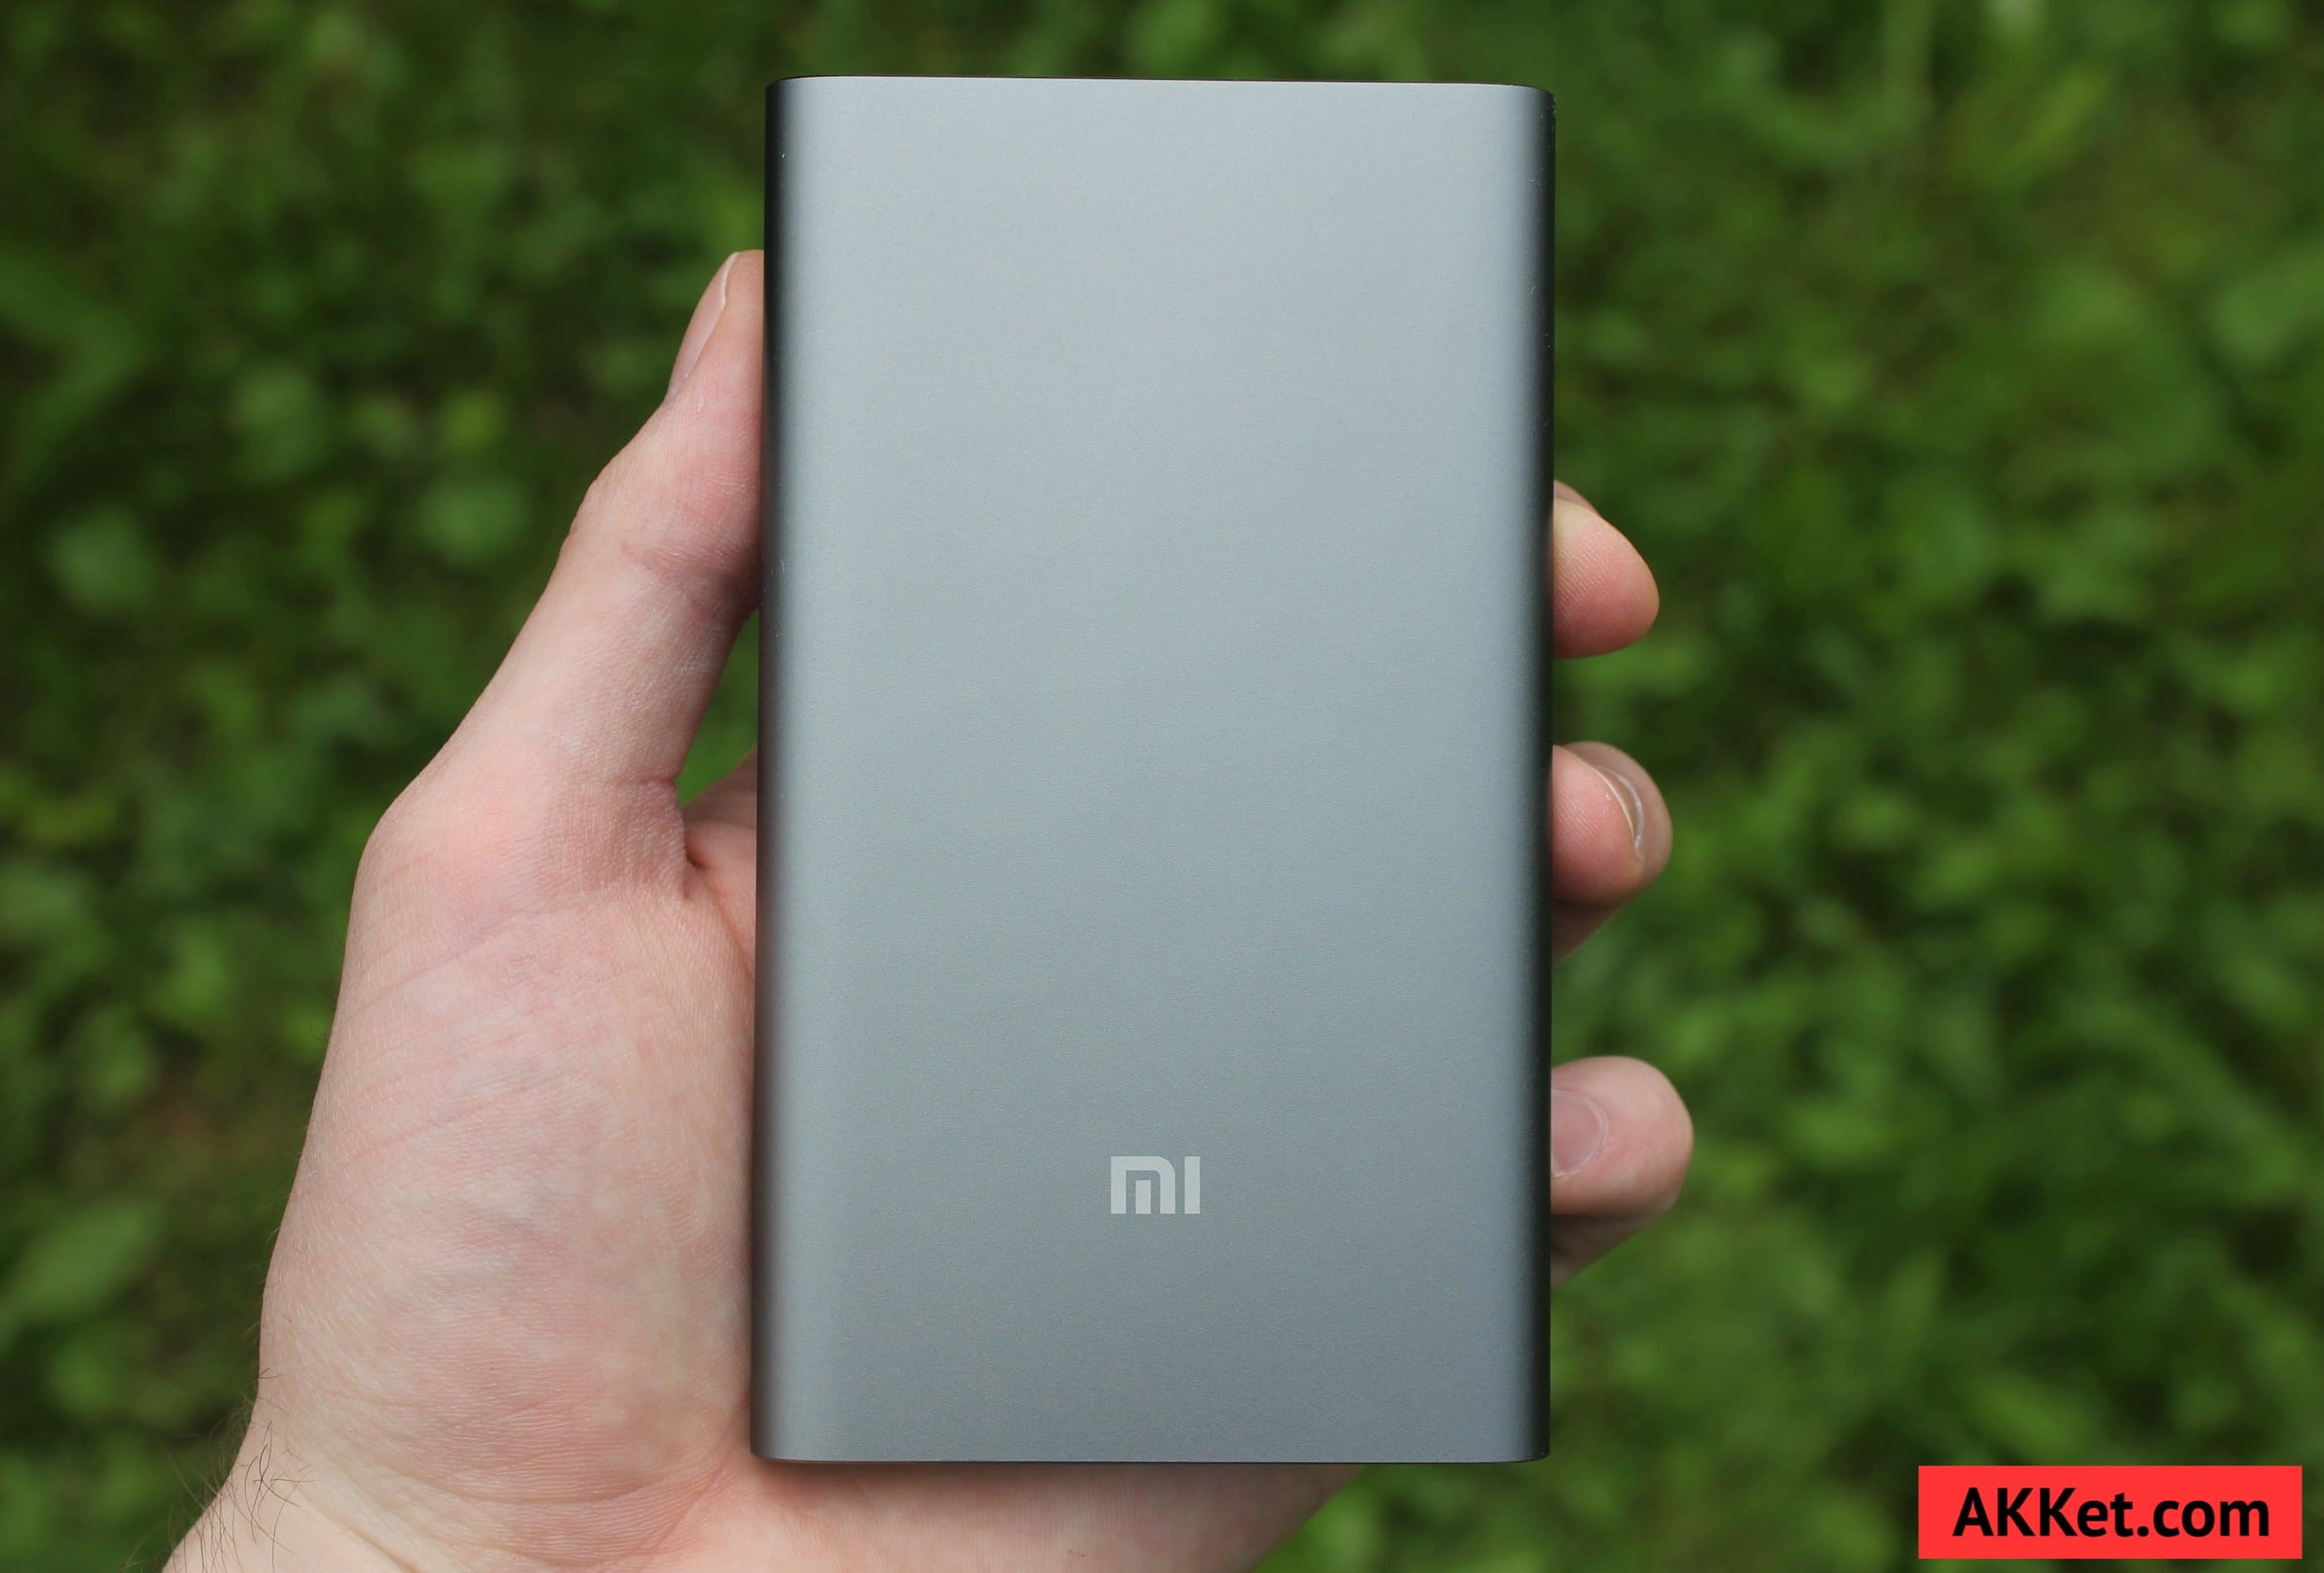 Xiaomi Mi Power Bank Pro 10000 мАч review photo 4